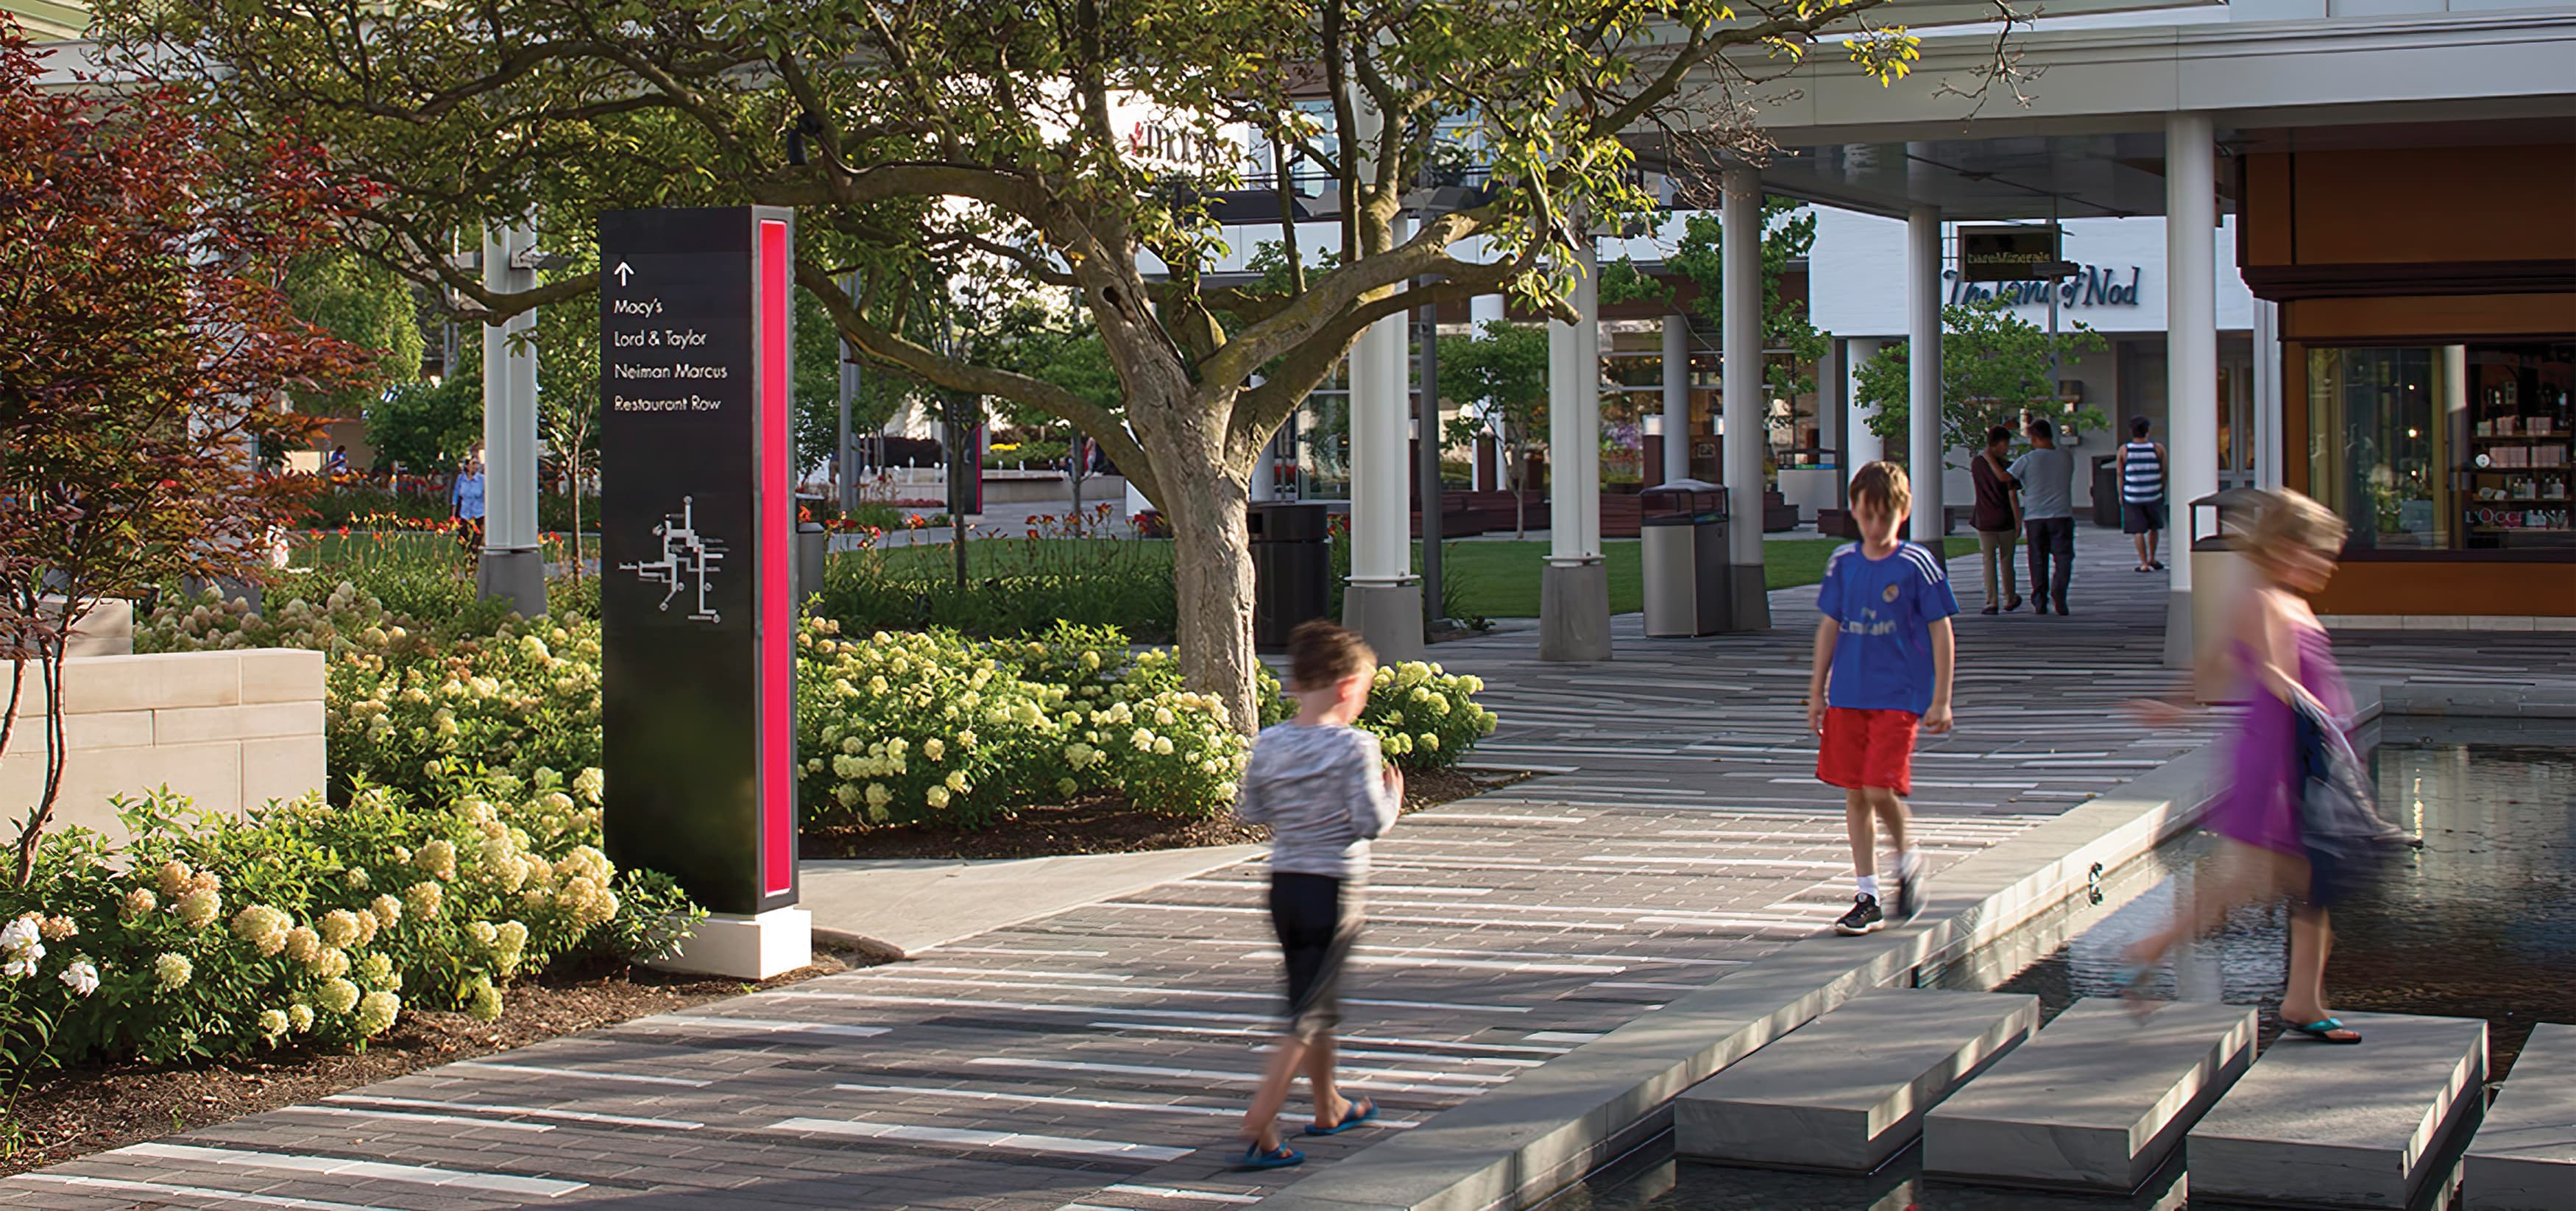 Oakbrook Center, a mixed-use shopping center in Oakbrook, Illinois. Project Wayfinding Signage.